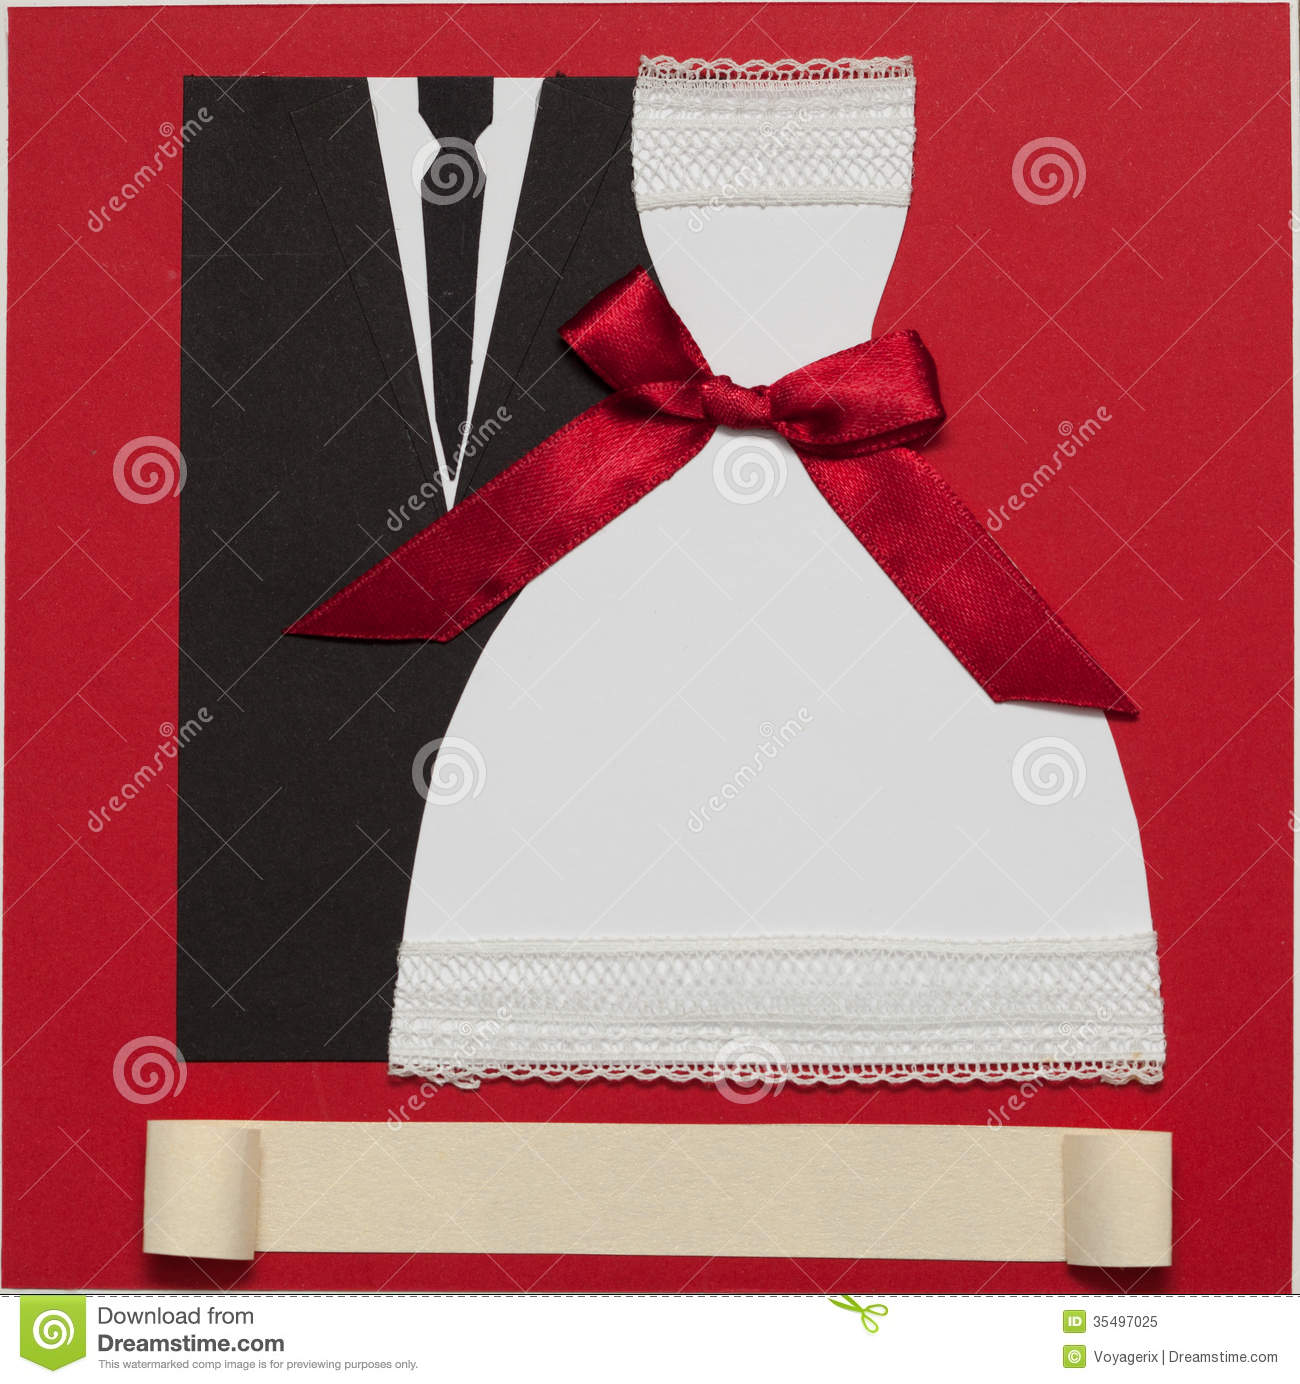 Wedding Card, Elegant Style Stock Image - Image of groom, invitation ...